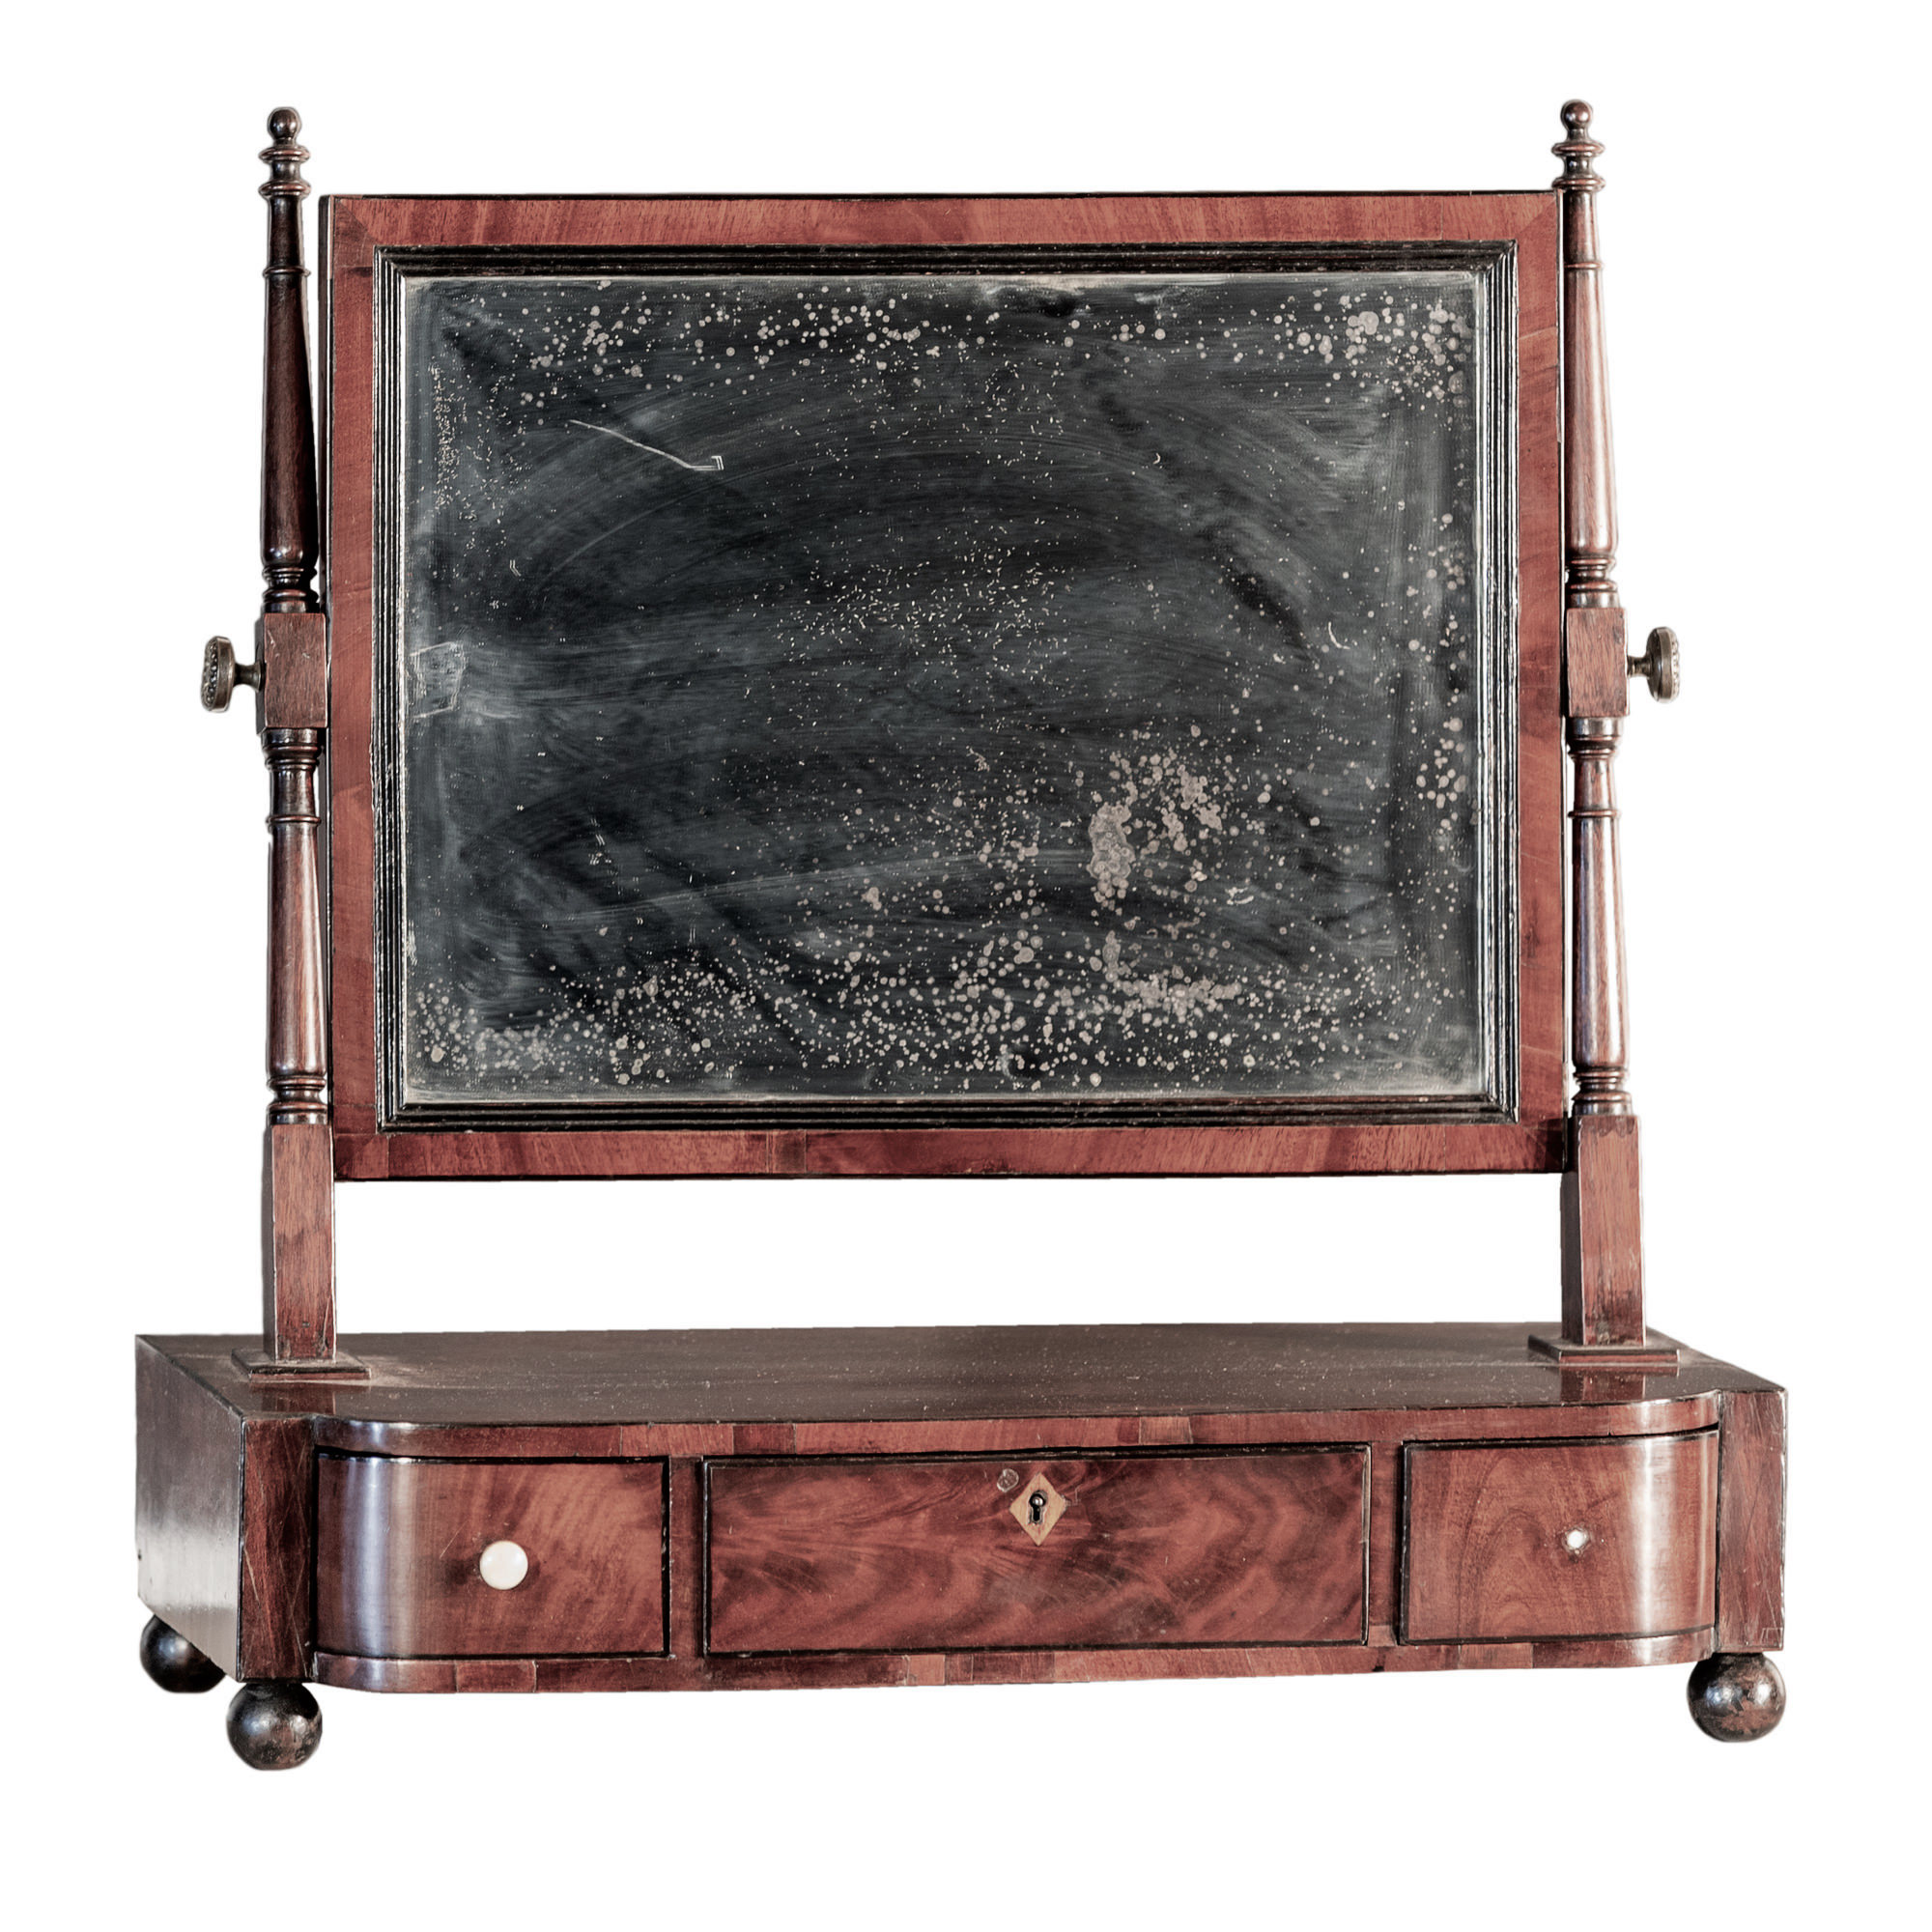 'George III Ebony Strung Mahogany Bowfront Toilet Mirror With Three Drawers Early 19th Century'